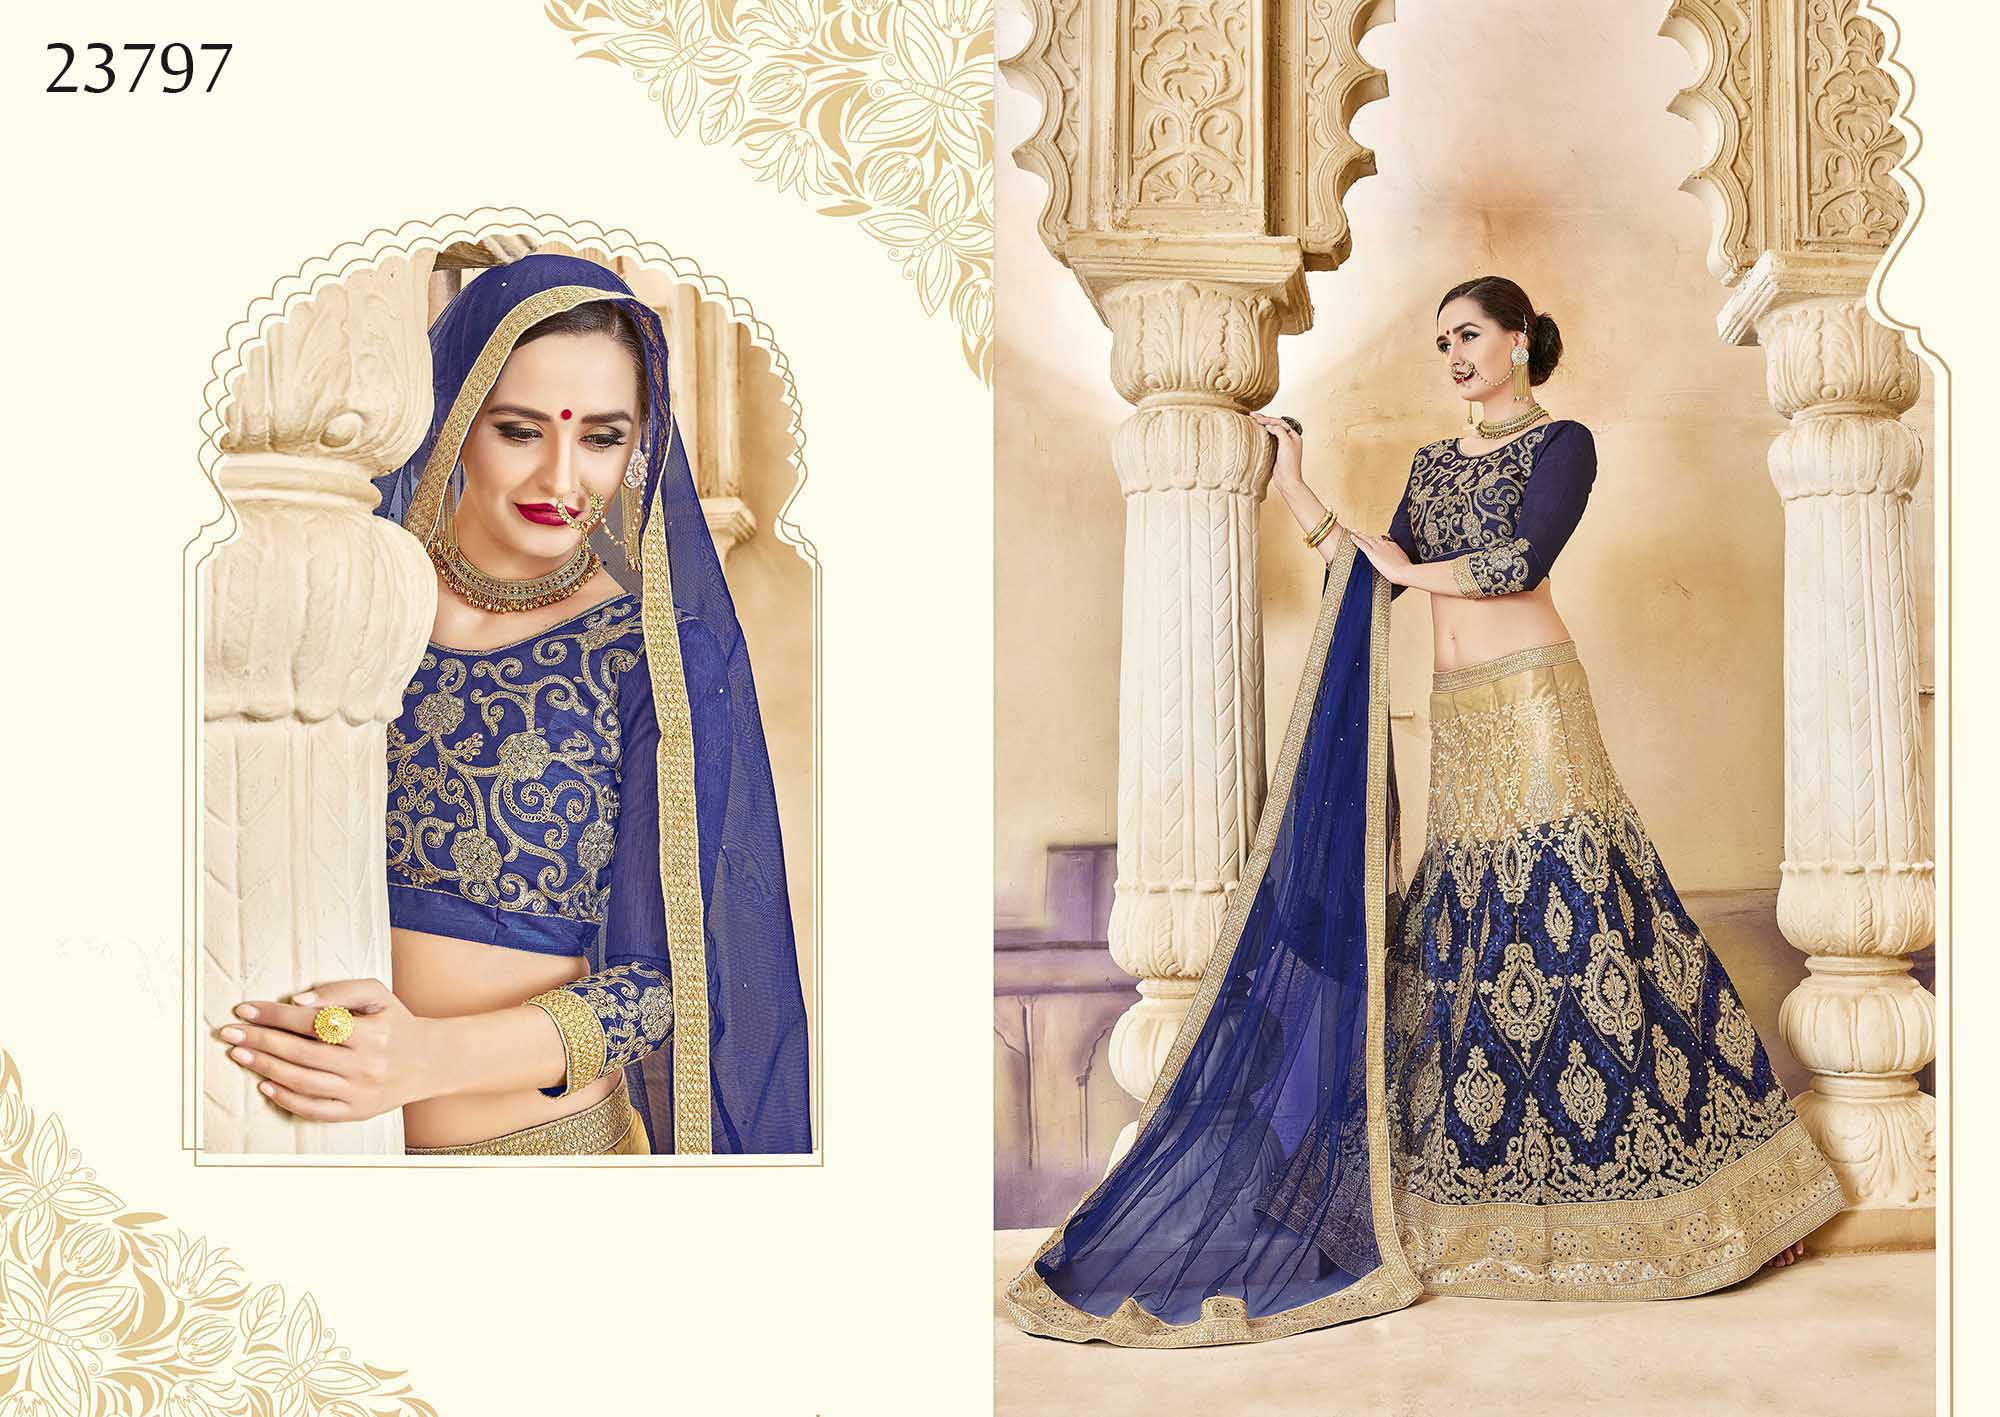 Royal bridal wear lehenga Irish 23797